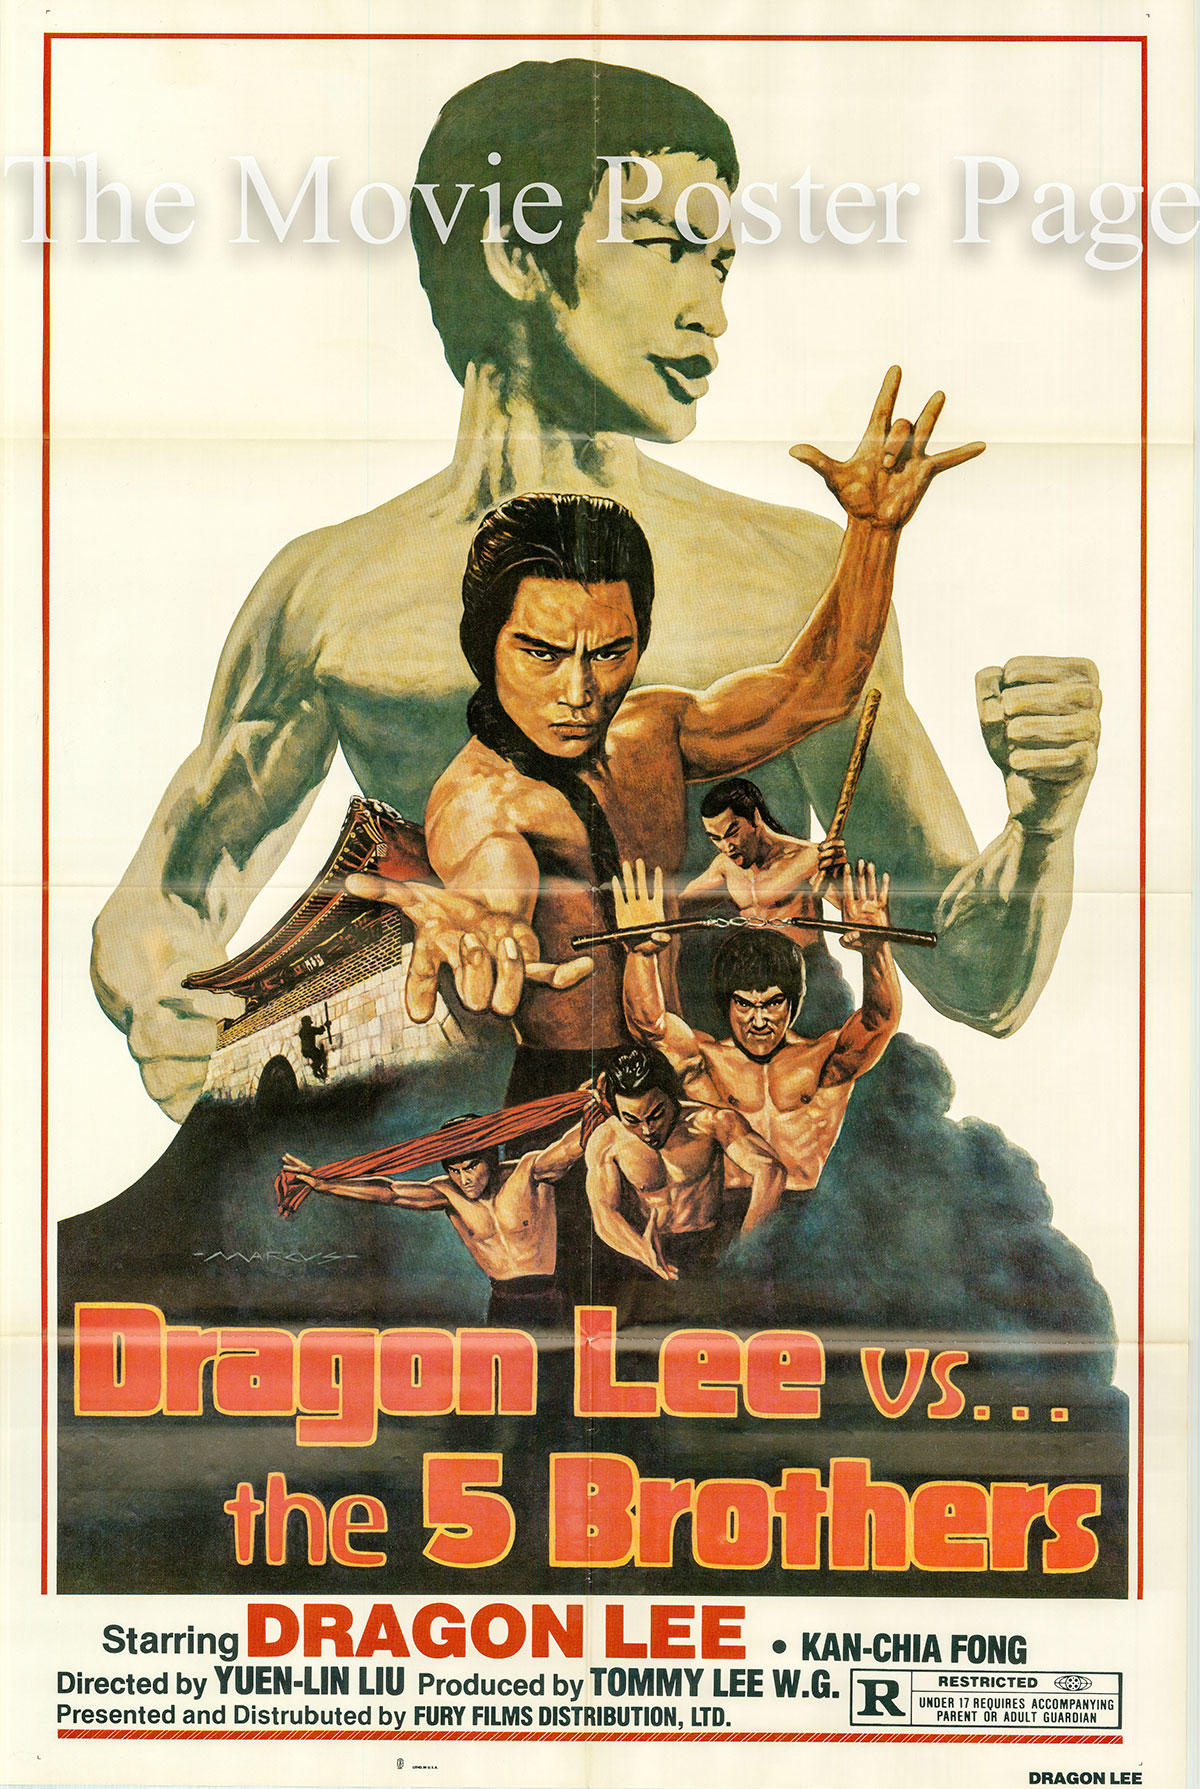 Pictured is a US one-sheet poster for the 1981 Yuen-lin Liu film Dragon Lee vs. the Five Brothers starring Dragon Lee.